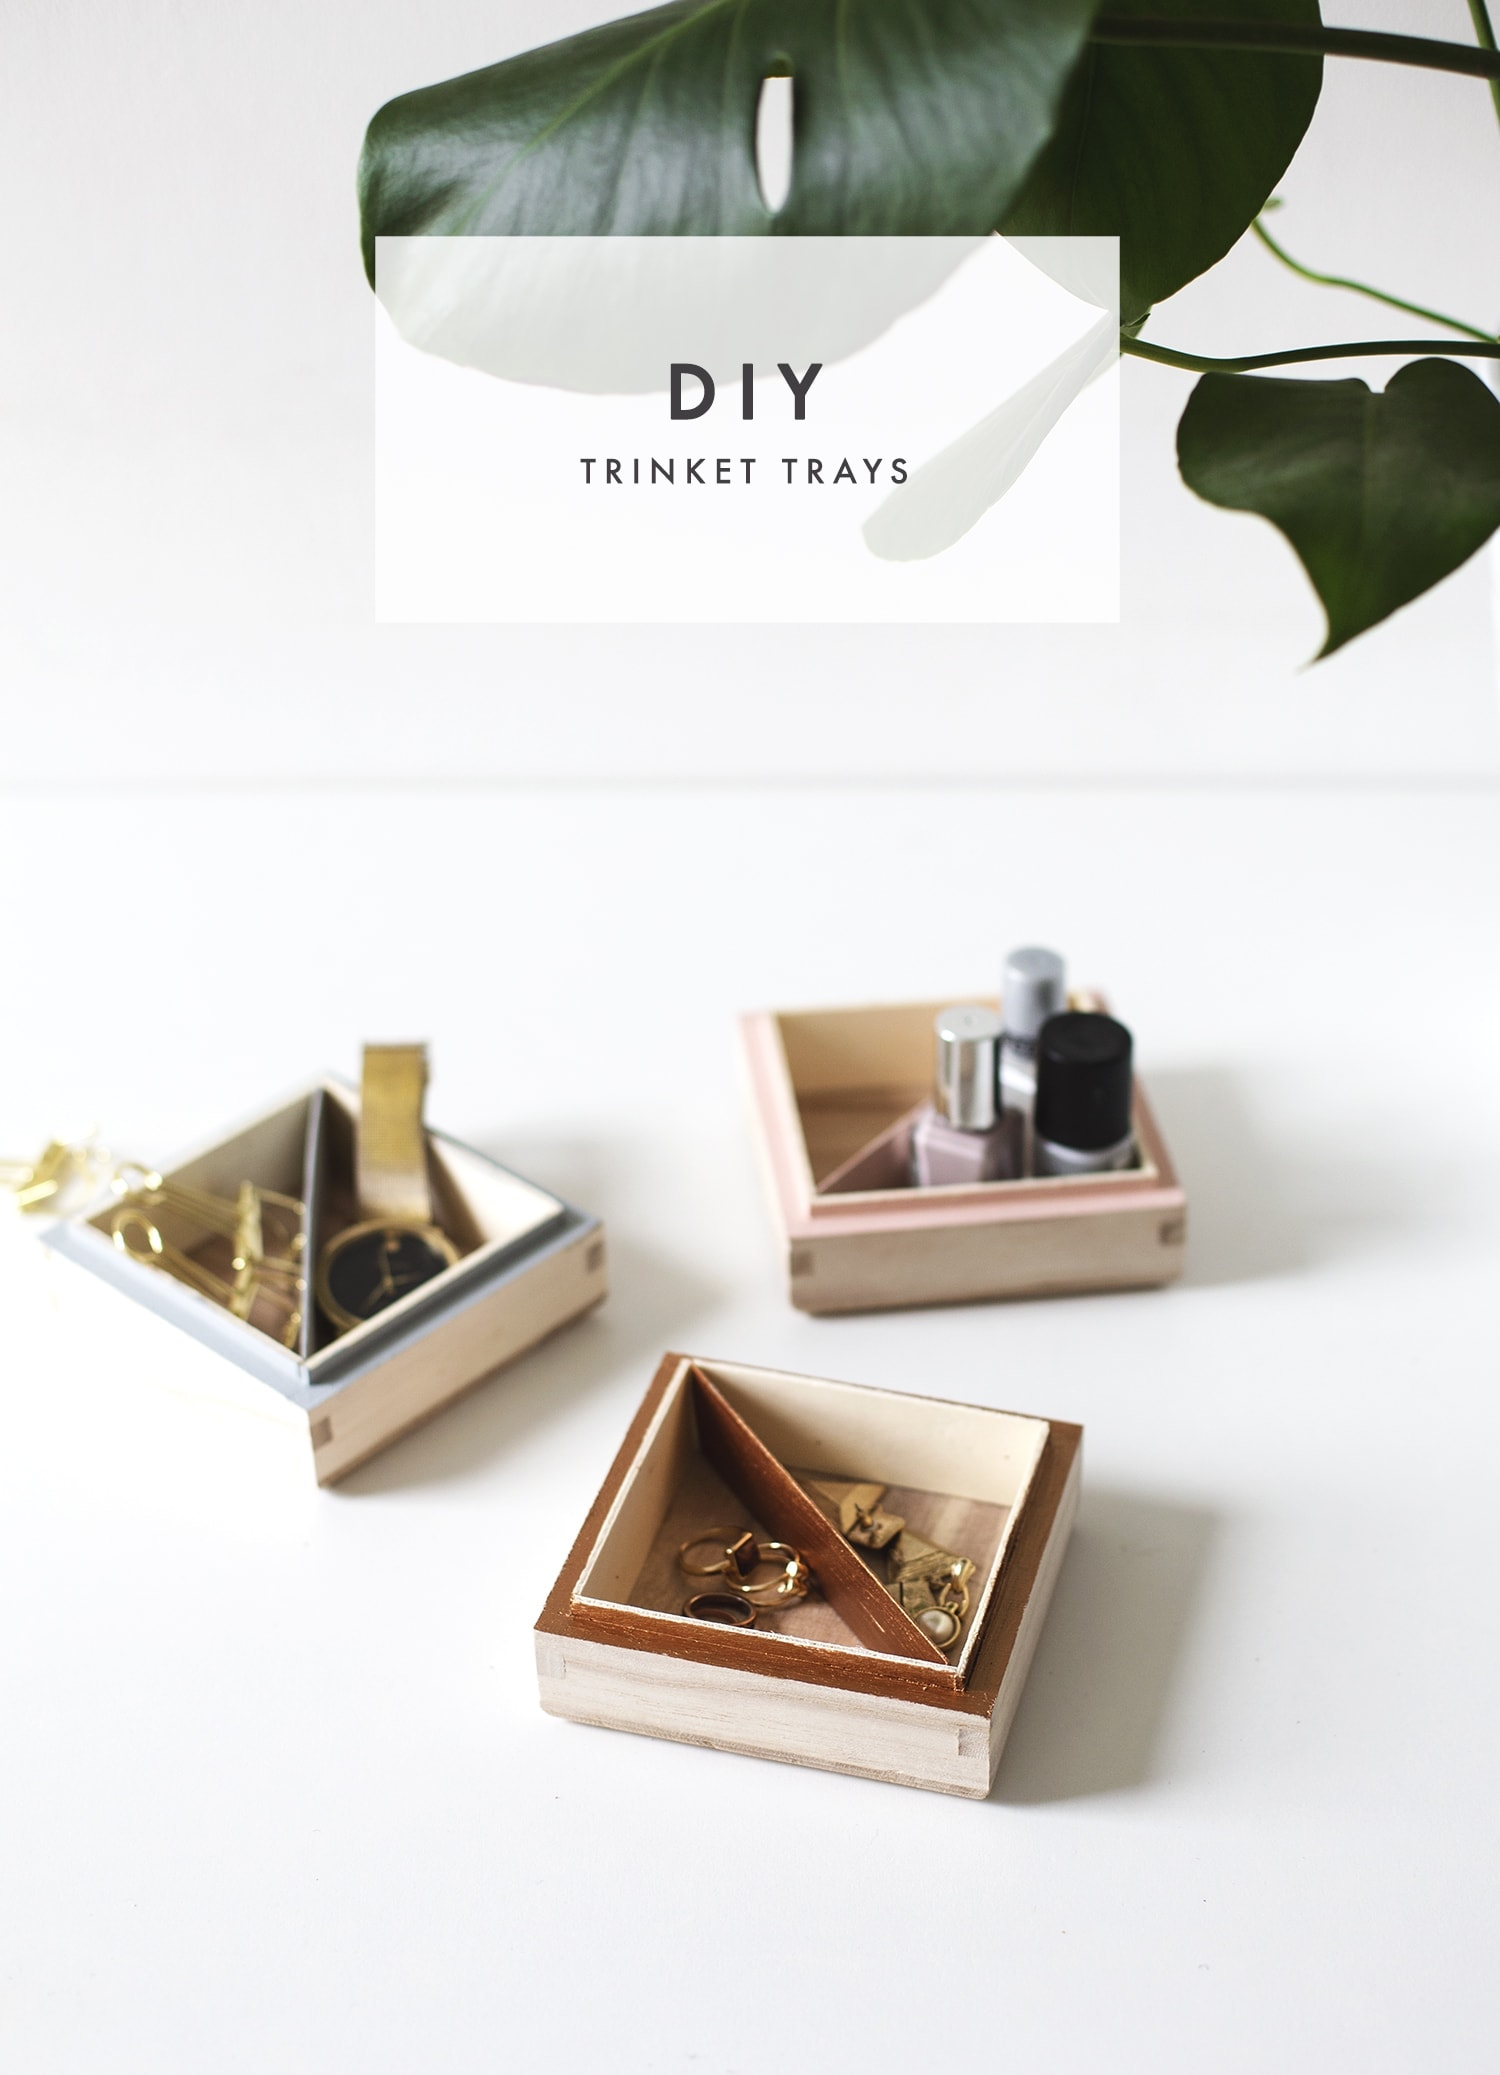 DIY trinket tray tutorial | easy storage | craft ideas